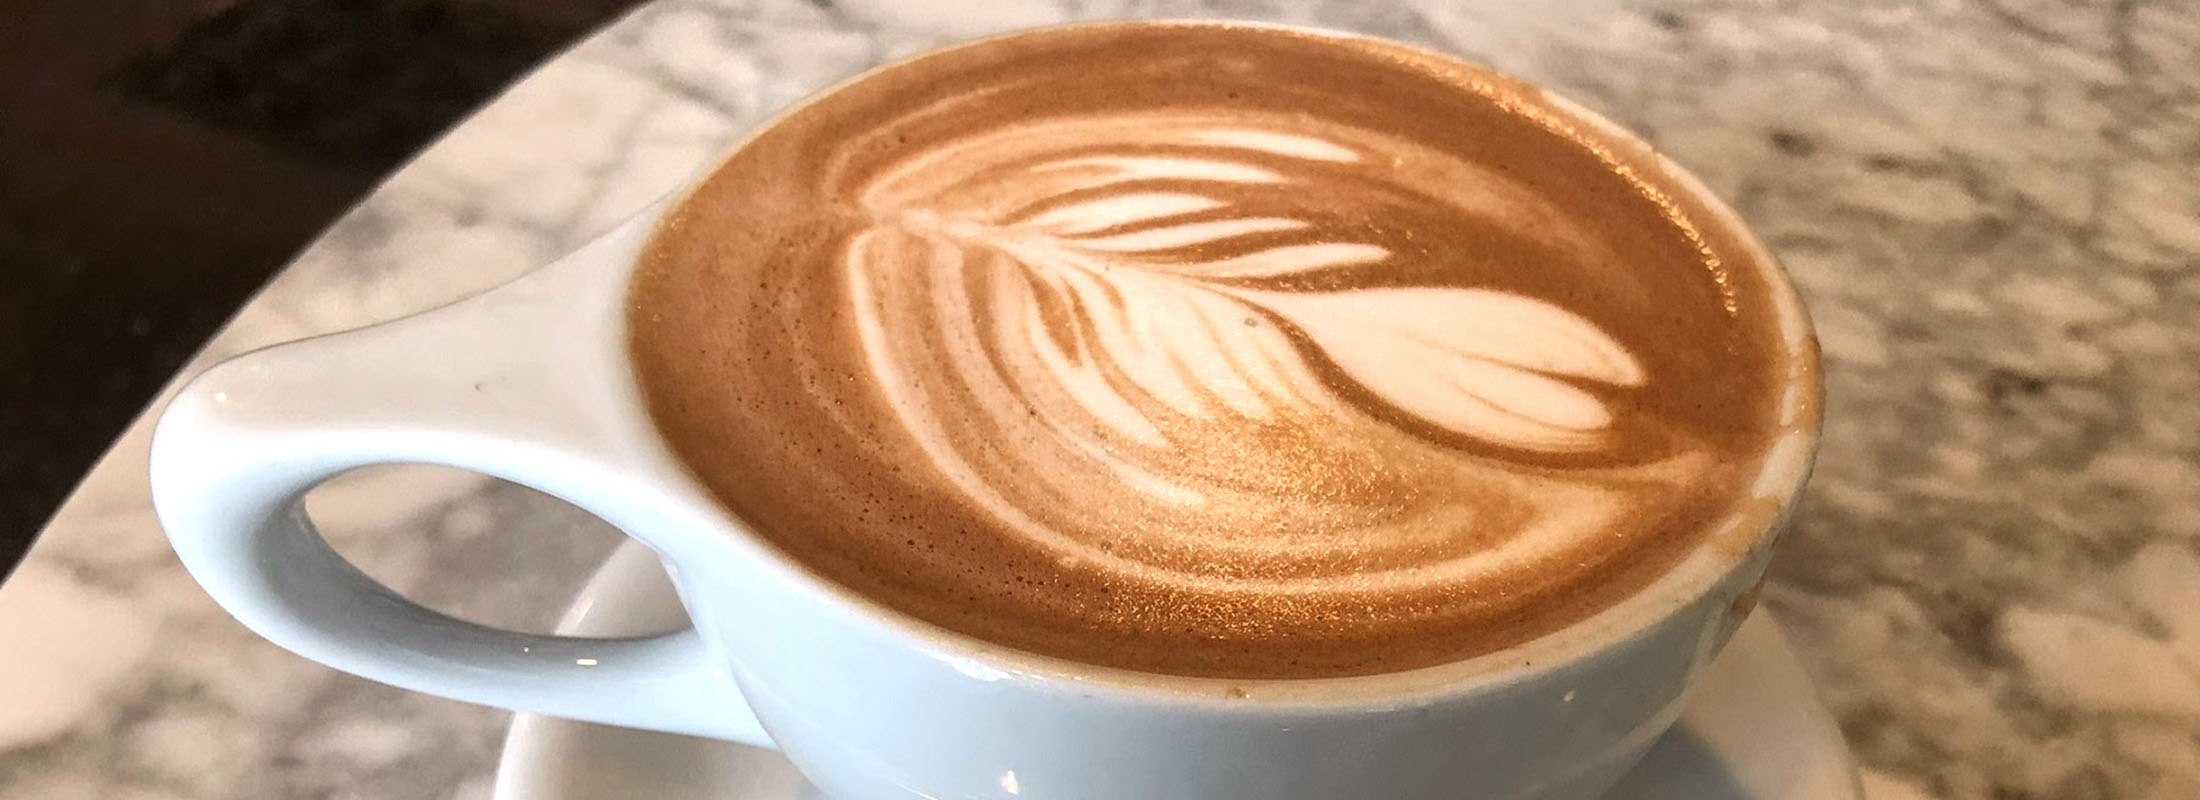 The hot chocolate at Public Espresso in the Hotel @ the Lafayette is made with melted Belgian dark chocolate. (Ben Tsujimoto/Buffalo News)